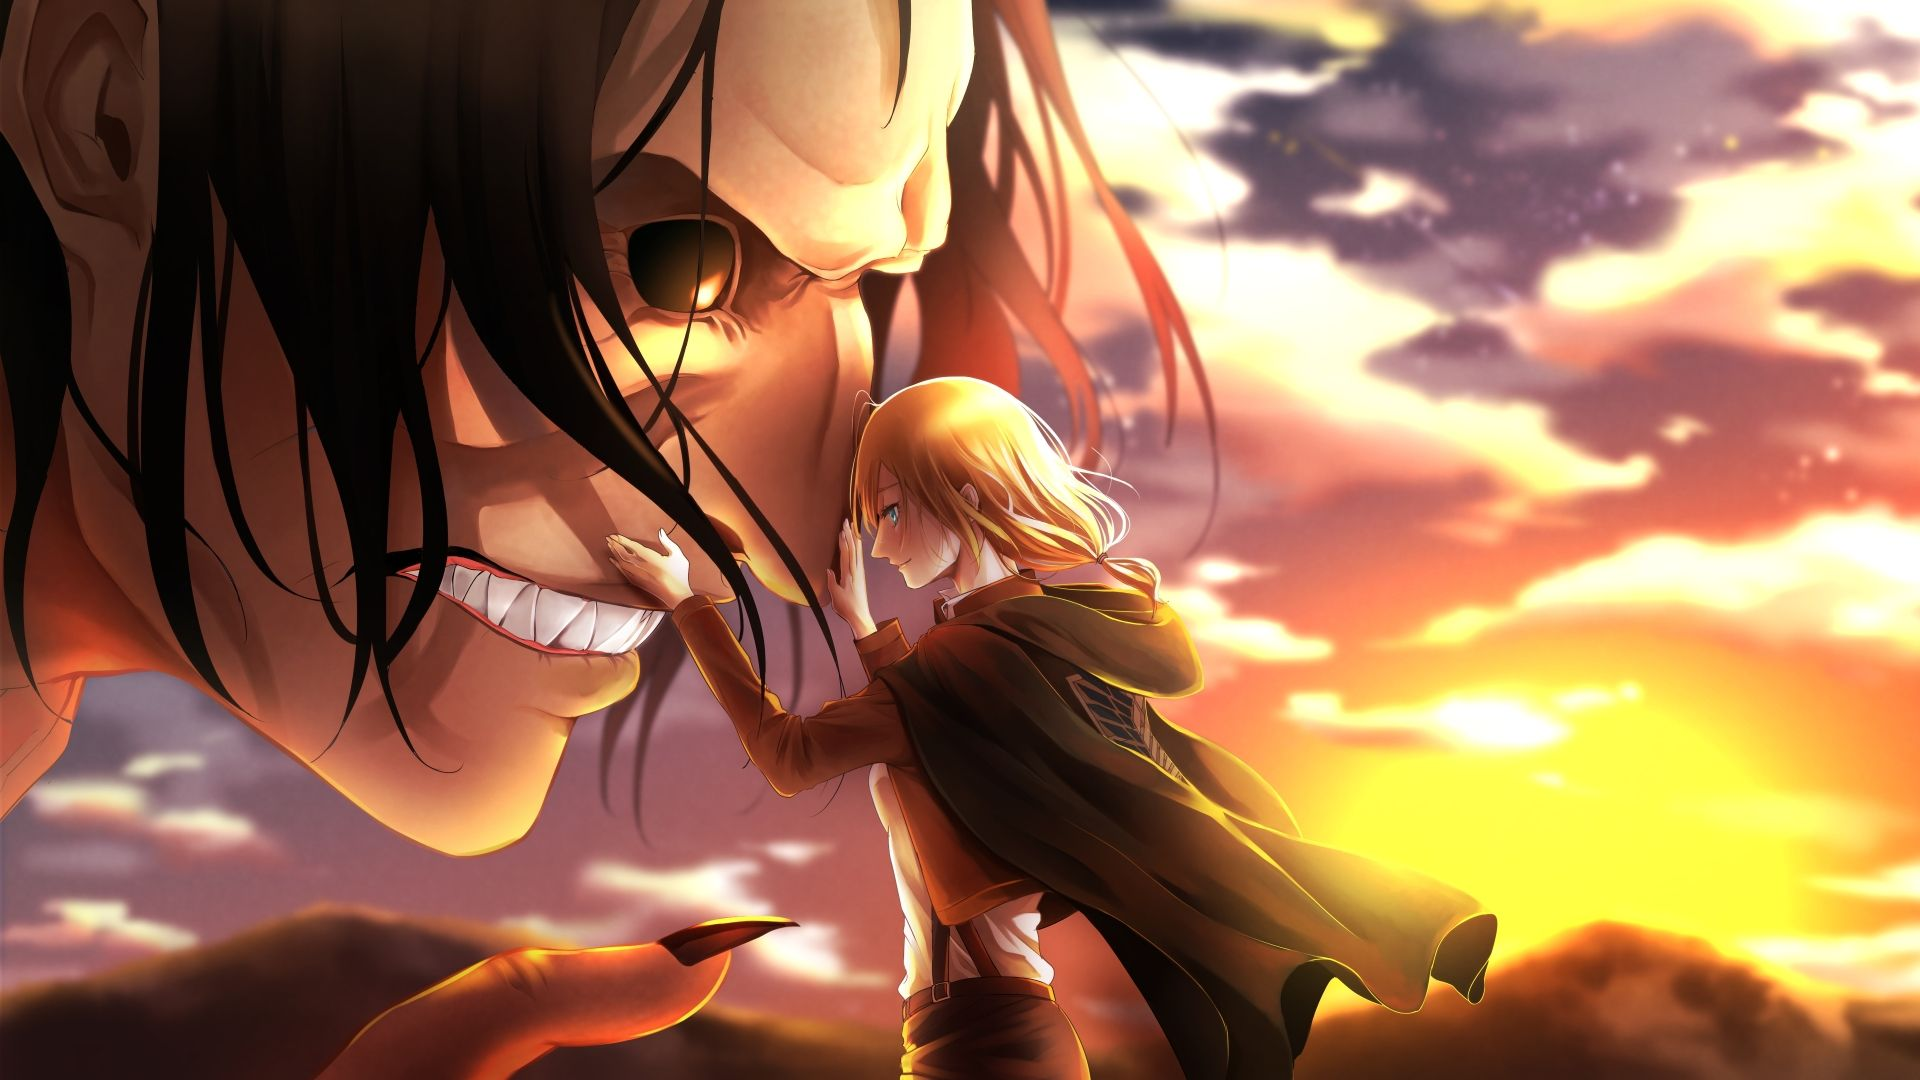 Anime Attack On Titan Titan Attack On Titan Ymir Historia Reiss Hd Wallpaper Attack On Titan Season Attack On Titan Anime Attack On Titan